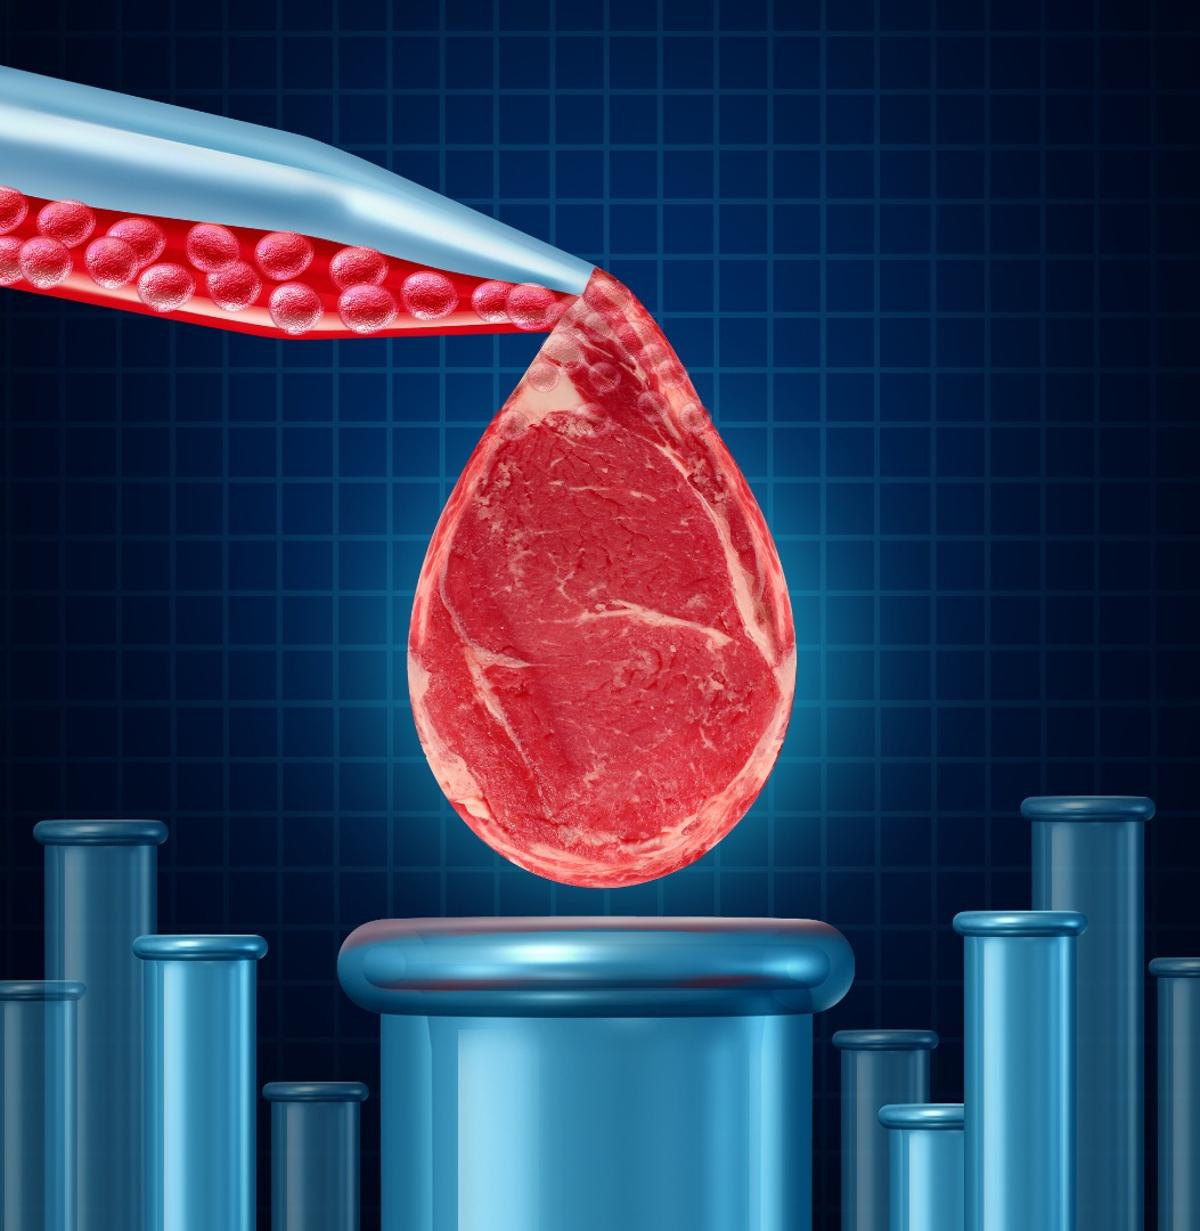 Should lab-grown meat be called meat? A new bill just passed in the state of Missouri says no